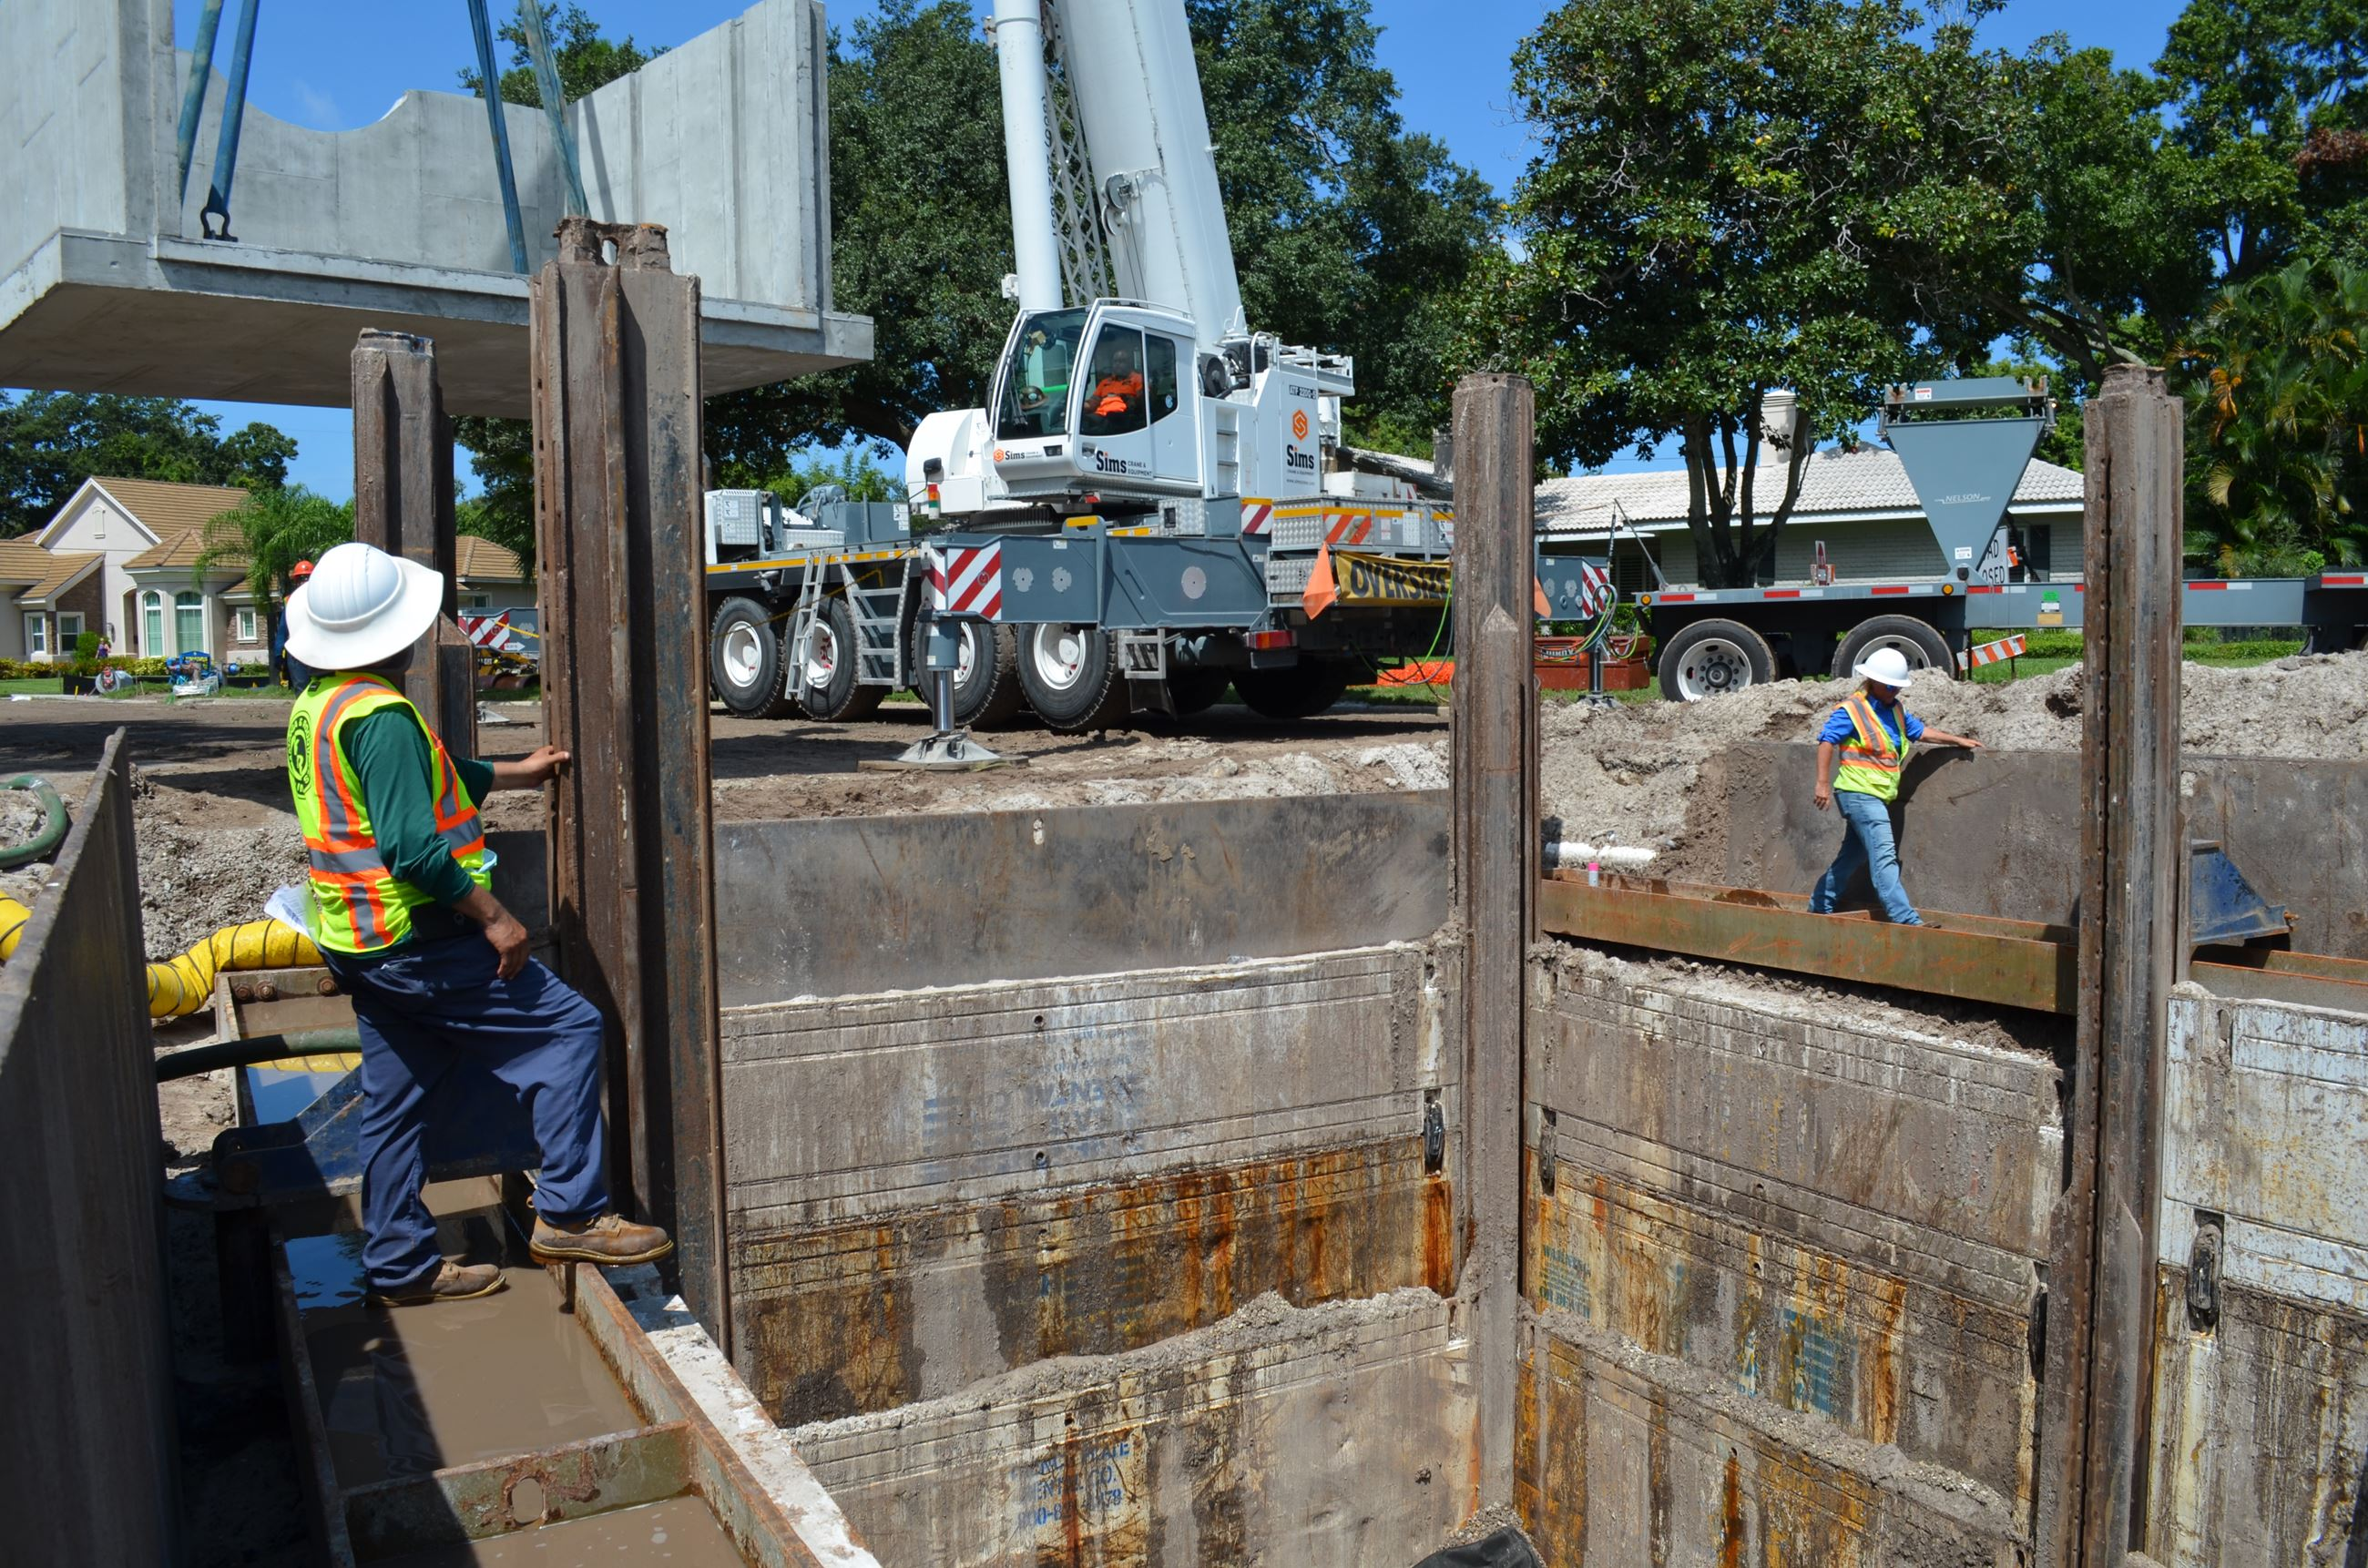 Contractors lower a large, rectangular baffle box base into the ground using a crane as a part of th